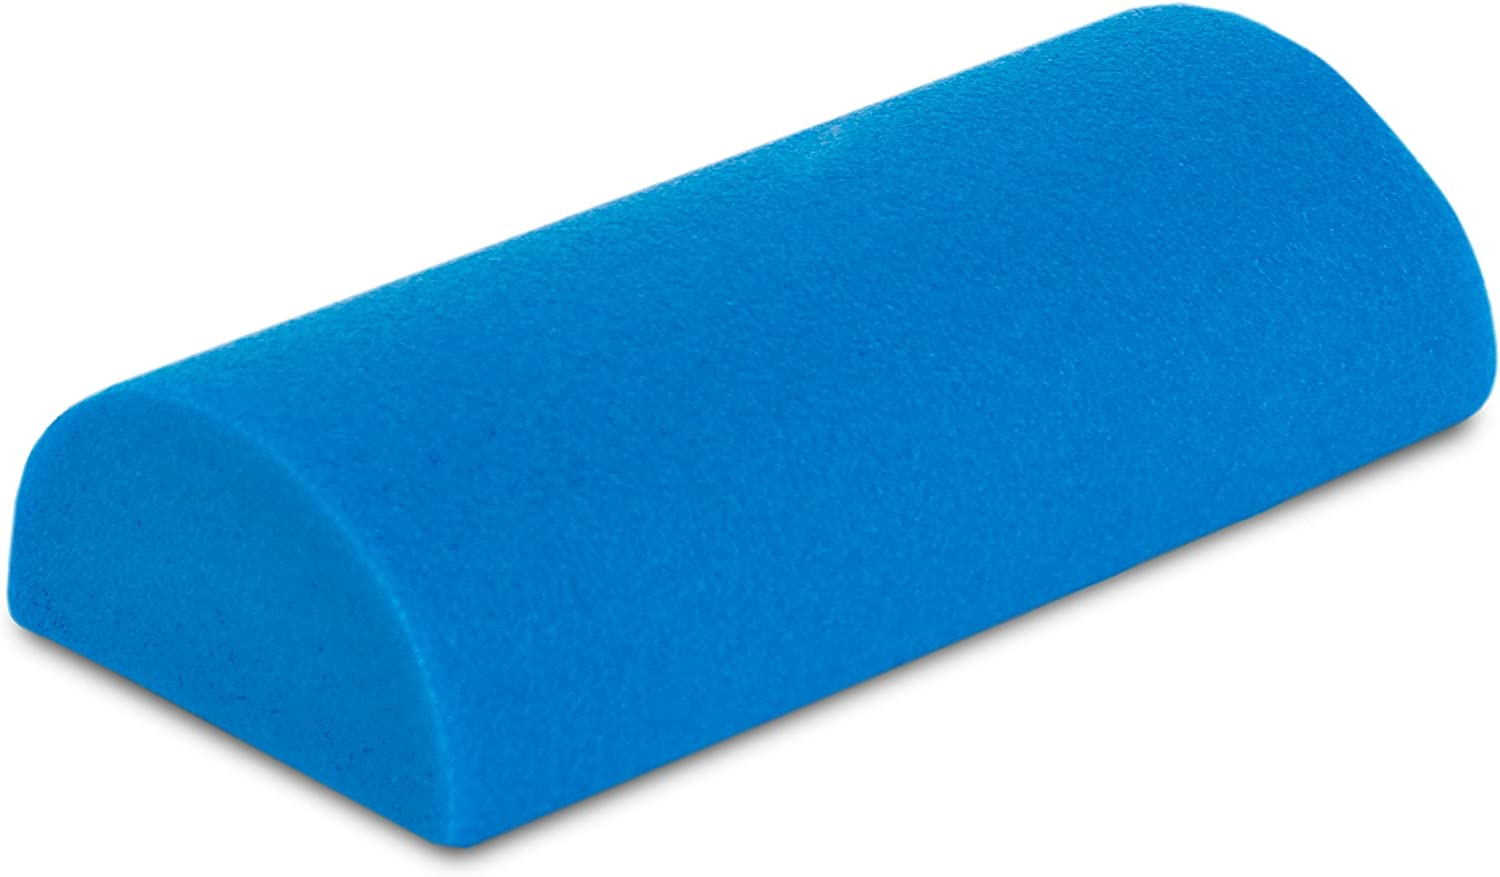 "ProsourceFit Flex Foam Half-Round Rollers 12"" for Muscle Massage, Physical Therapy, Core & Balance Exercises Stabilization, Pilates, Blue : Exercise Foam Rollers : Sports & Outdoors"